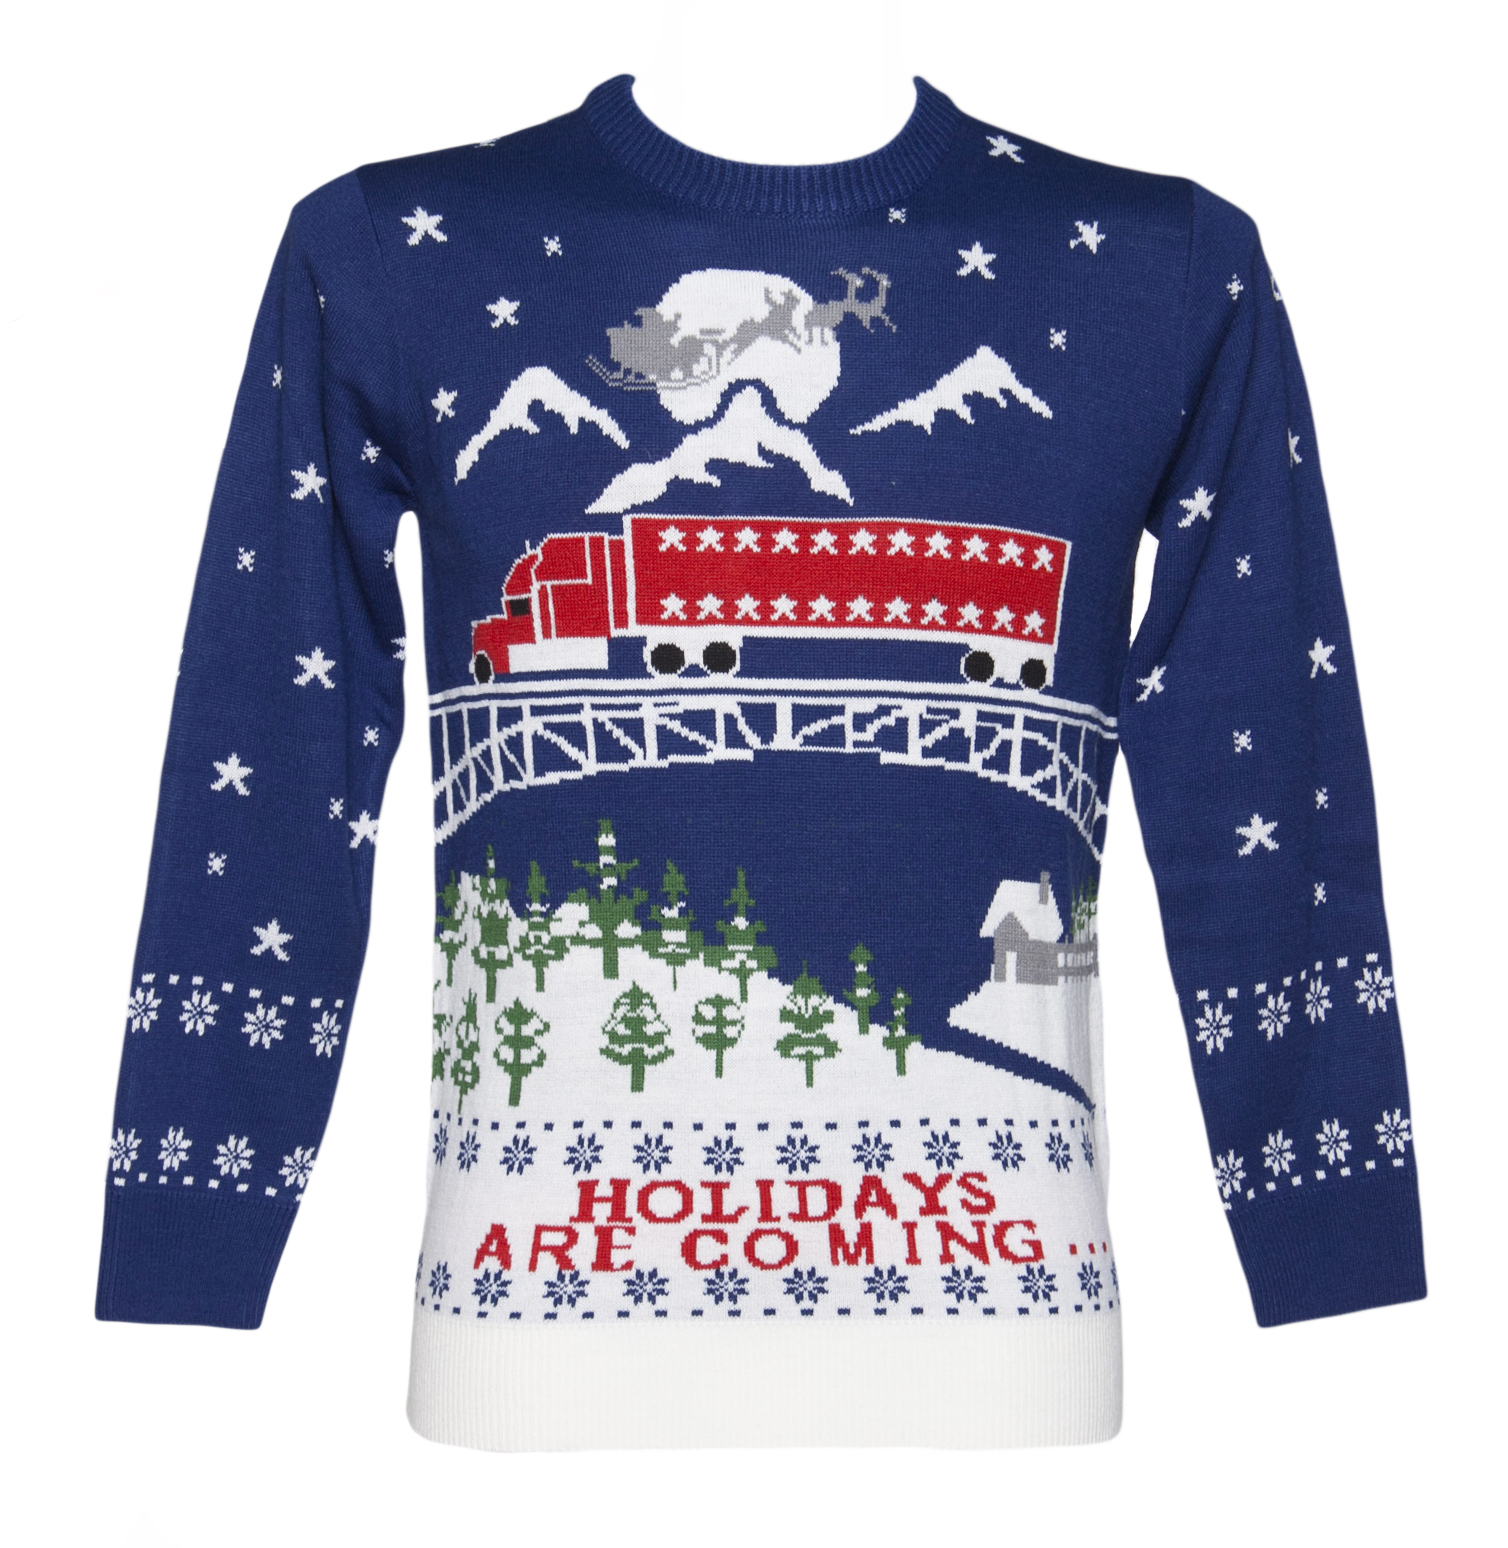 Unisex Holidays Are Coming Christmas Jumper from Cheesy Christmas Jumpers